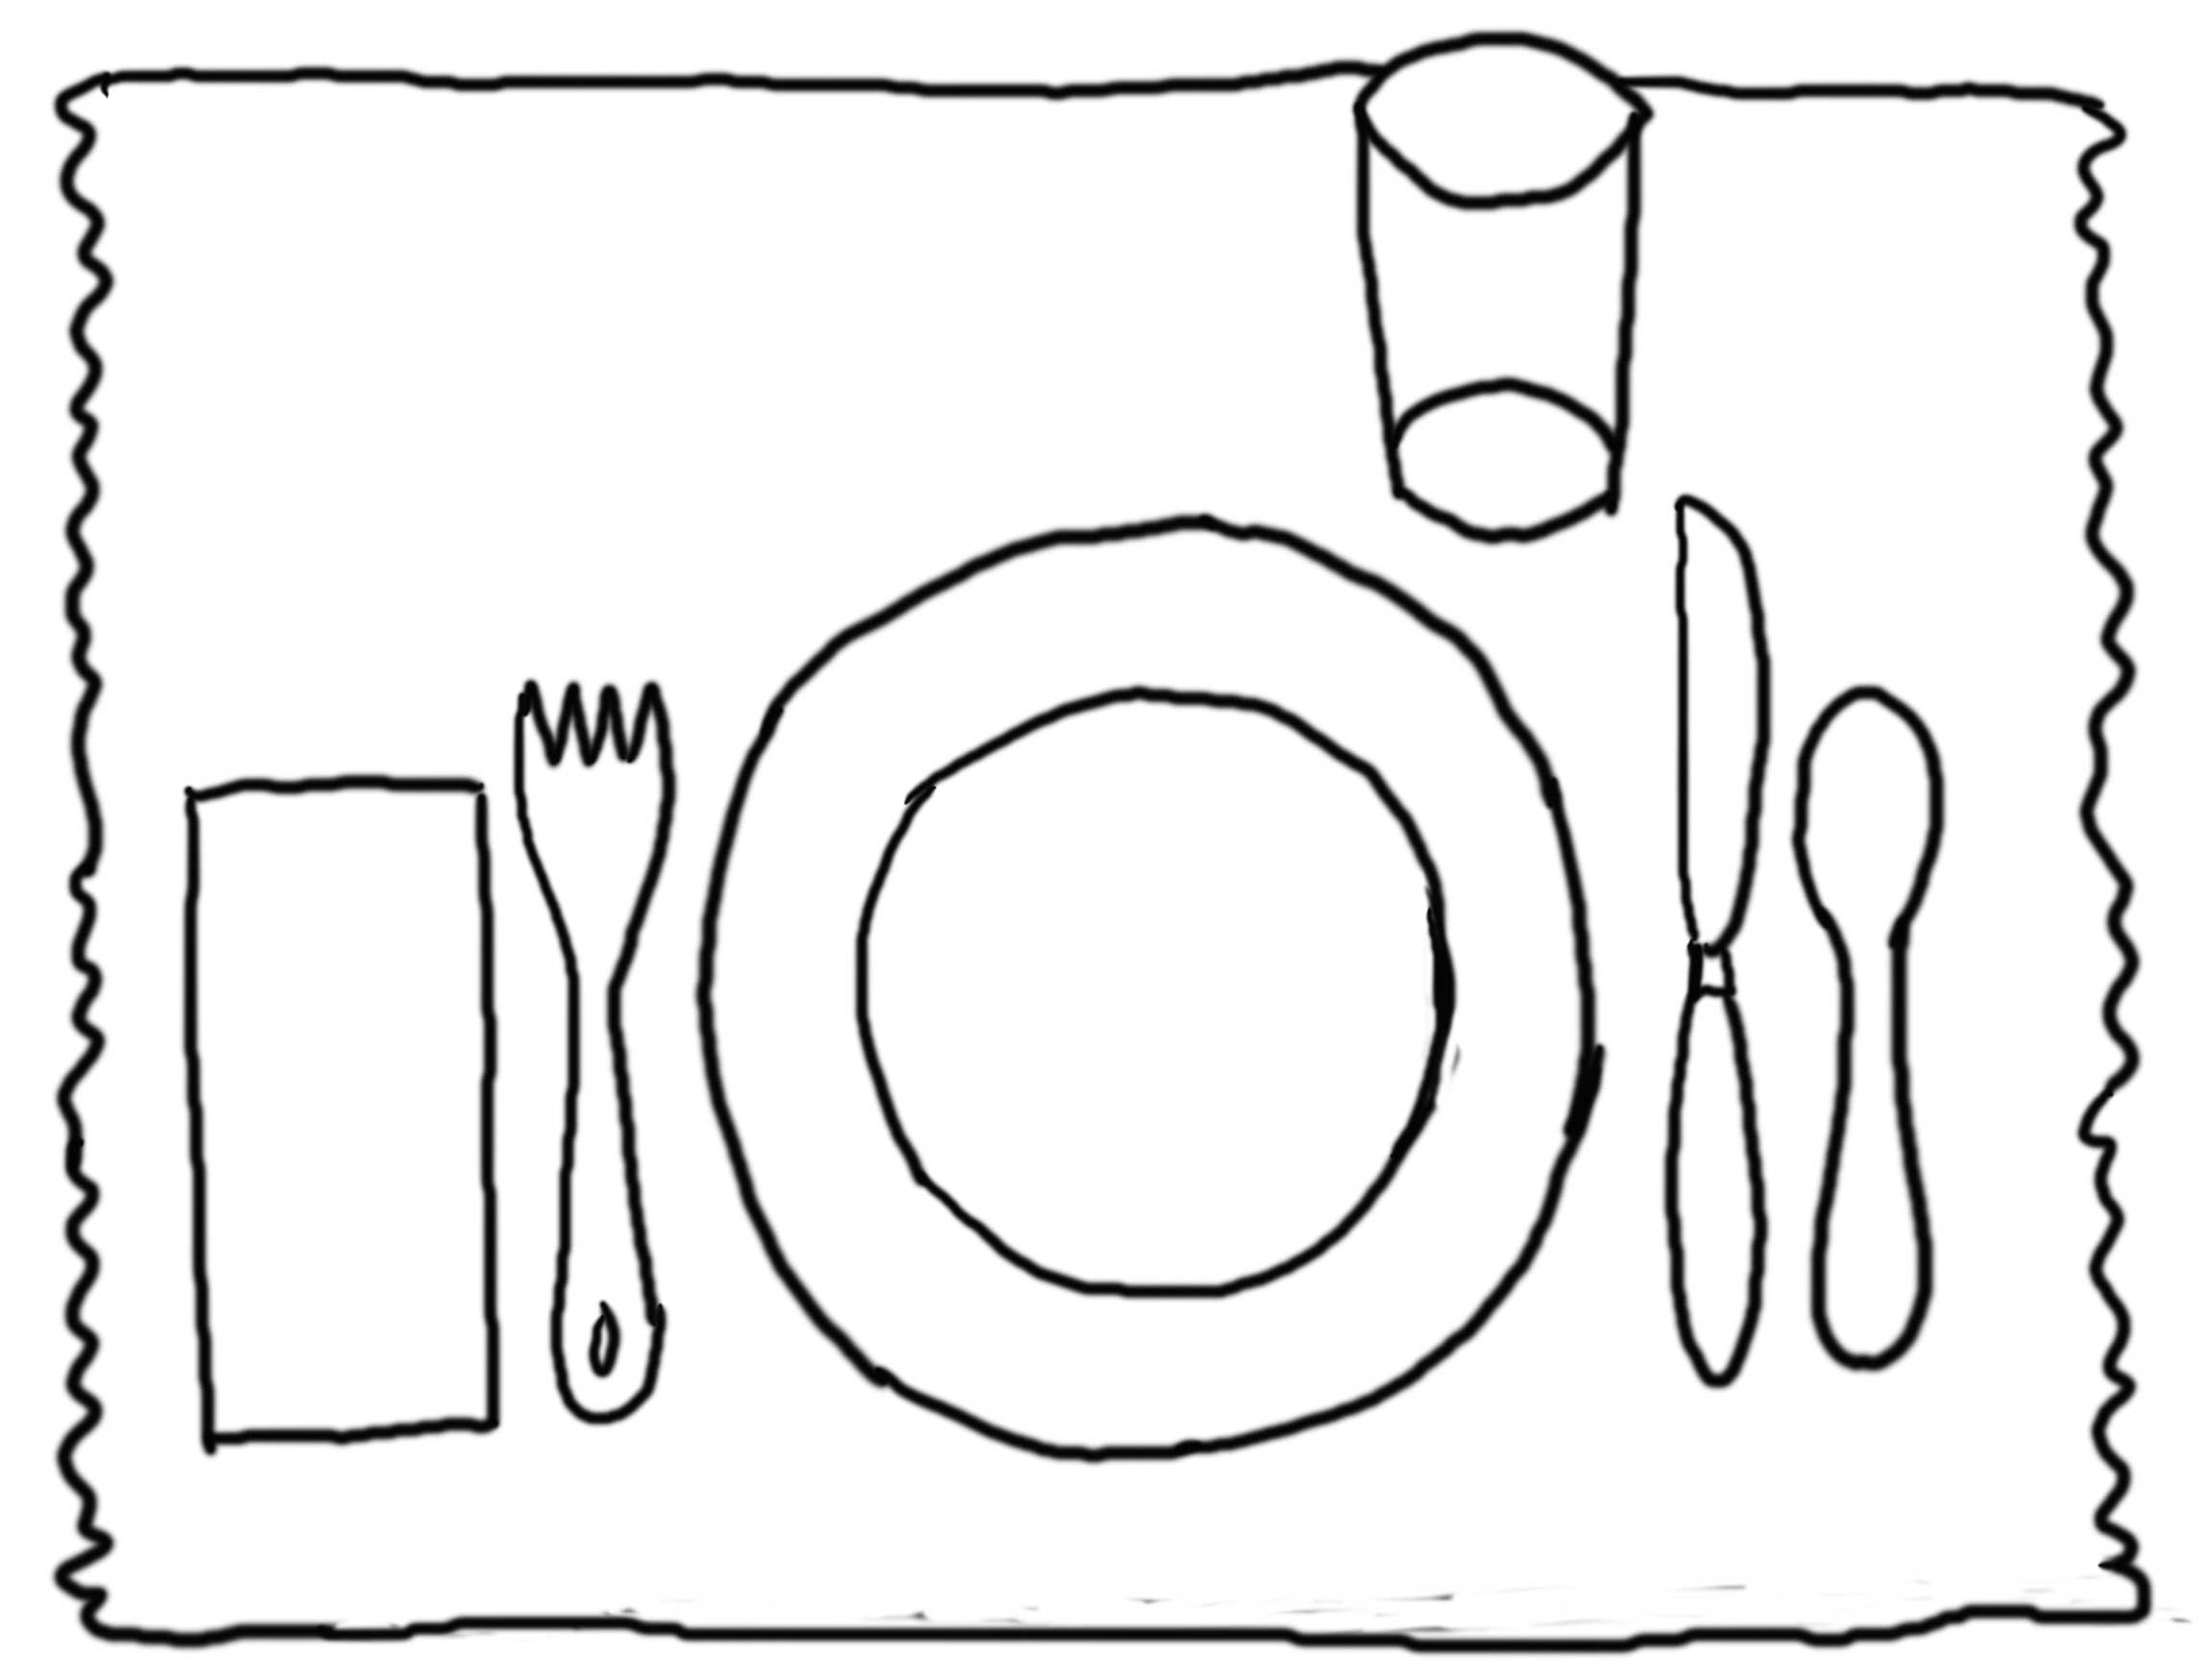 Tischgedeck Clipart Placemat Clipart Clipground